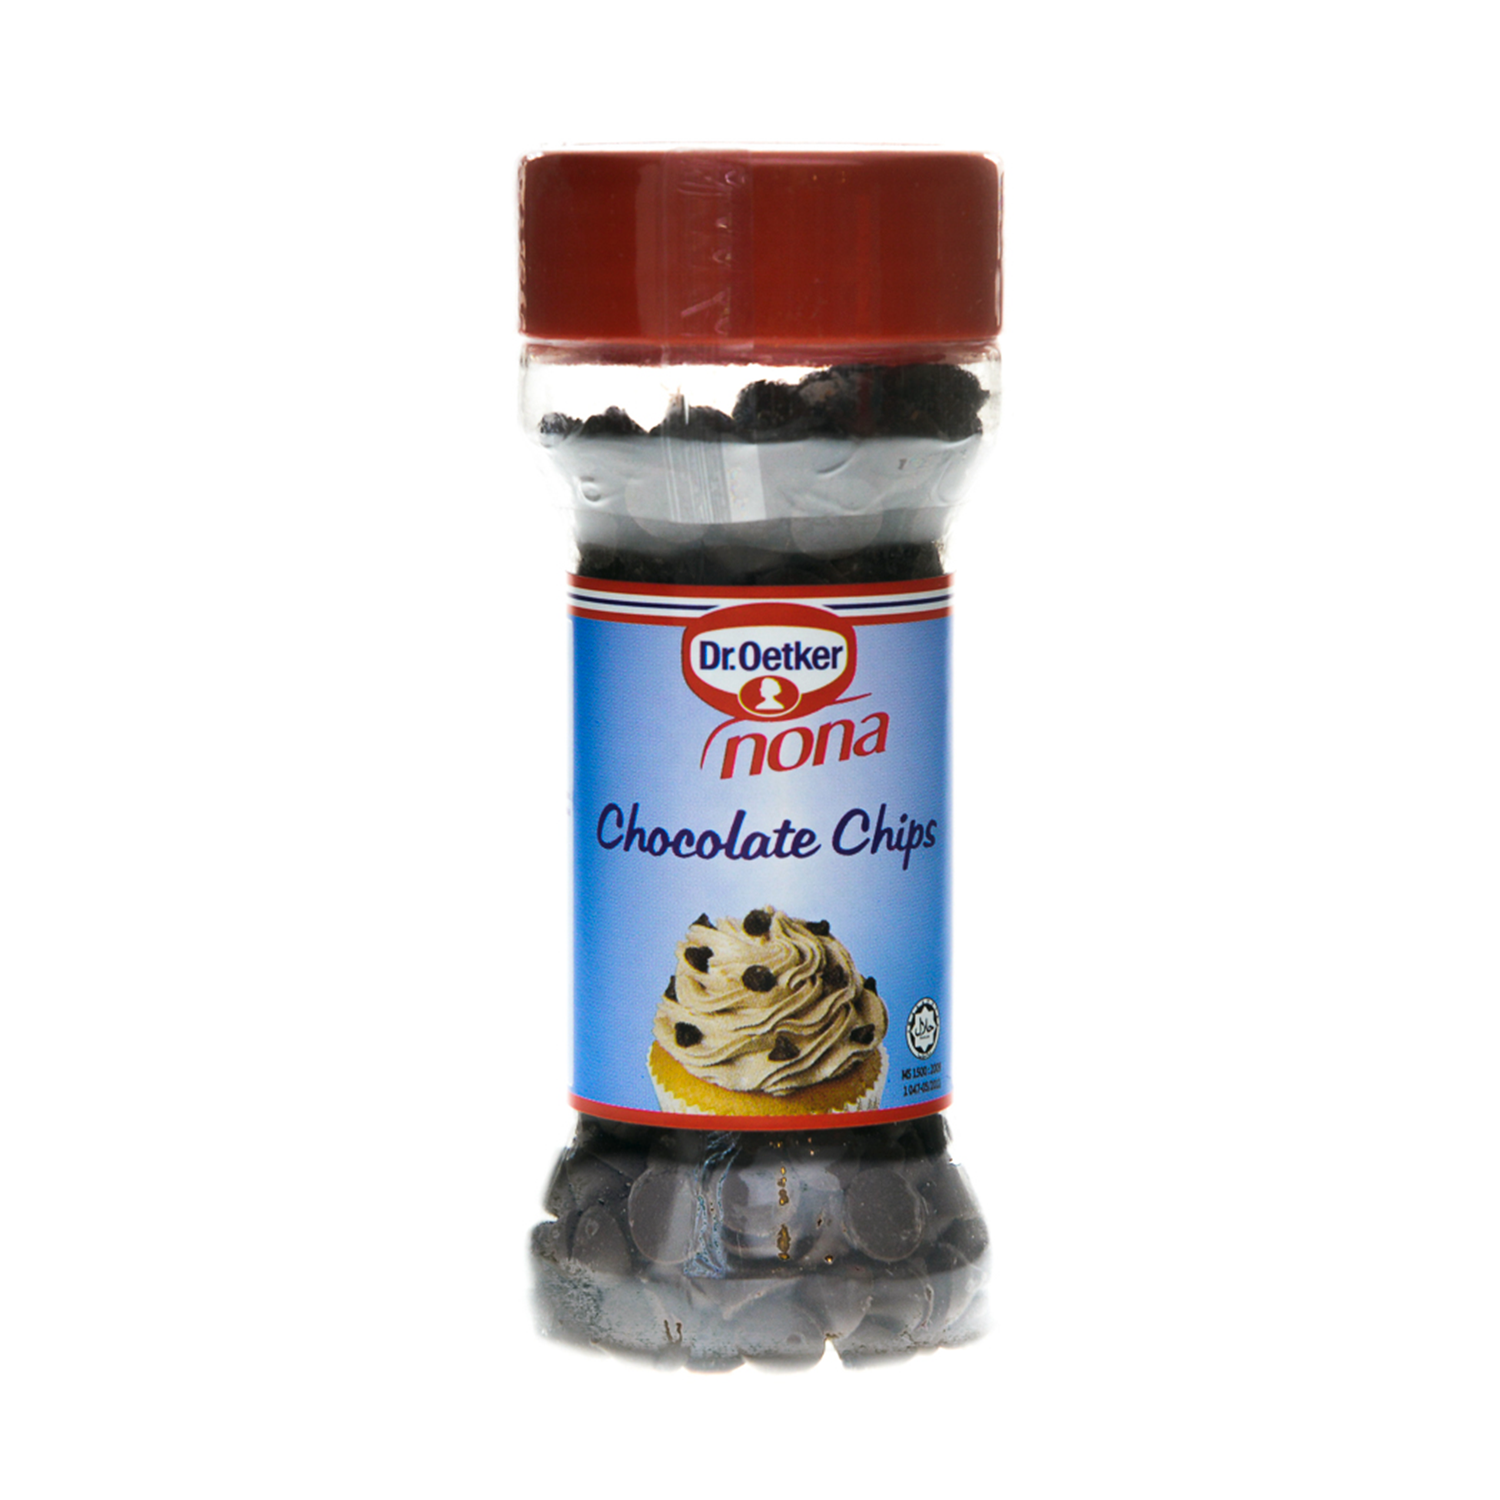 DR. OETKER NONA CHOCOLATE CHIPS 50G